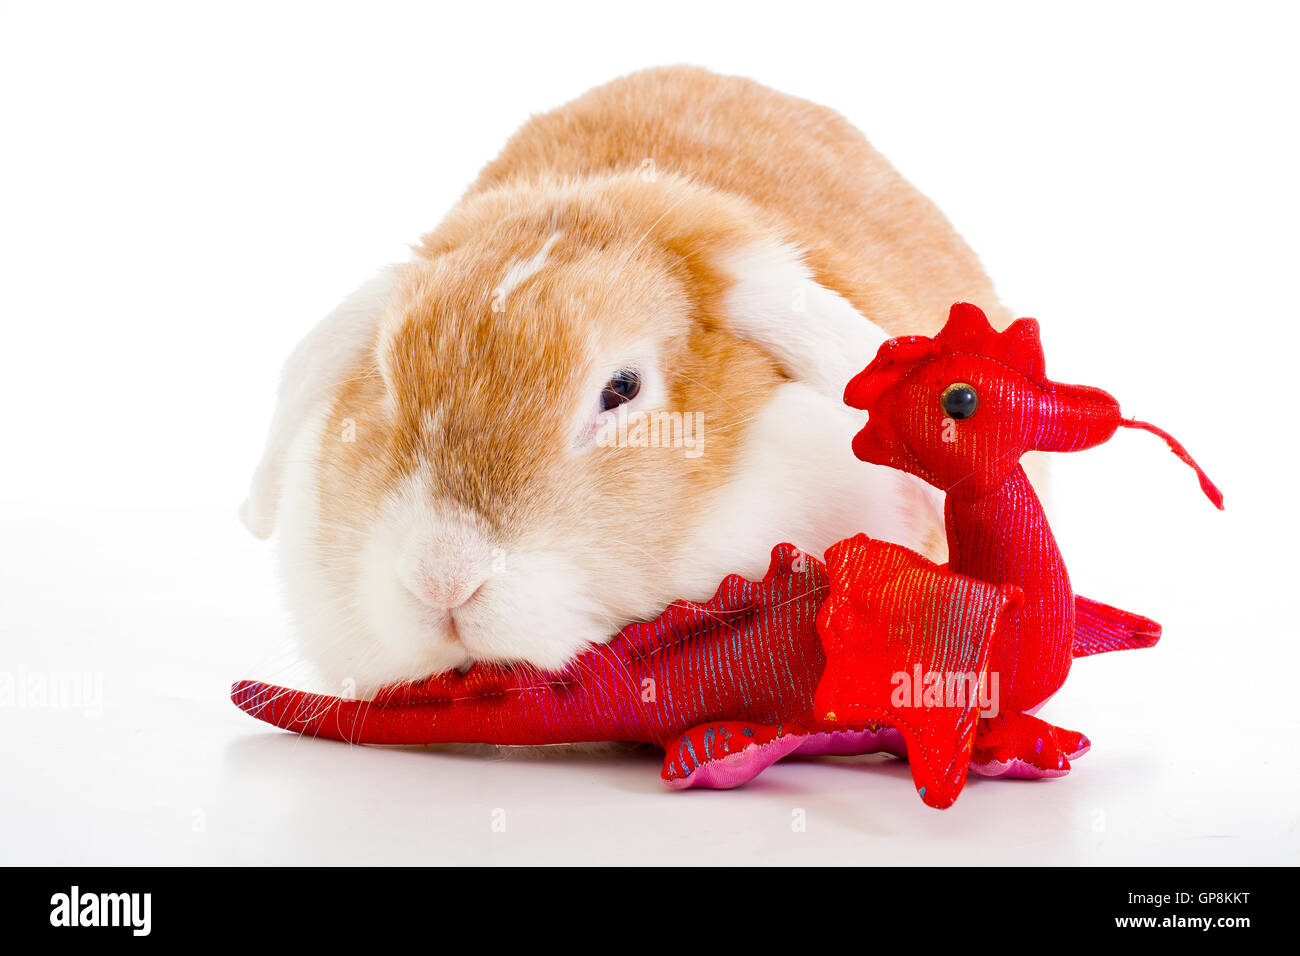 Wo eared bunny in white background studio play with red dragon toy wo eared bunny in white background studio play with red dragon toy cute beasutiful orange lop dutch rabbit widder nhd dwarf thecheapjerseys Gallery